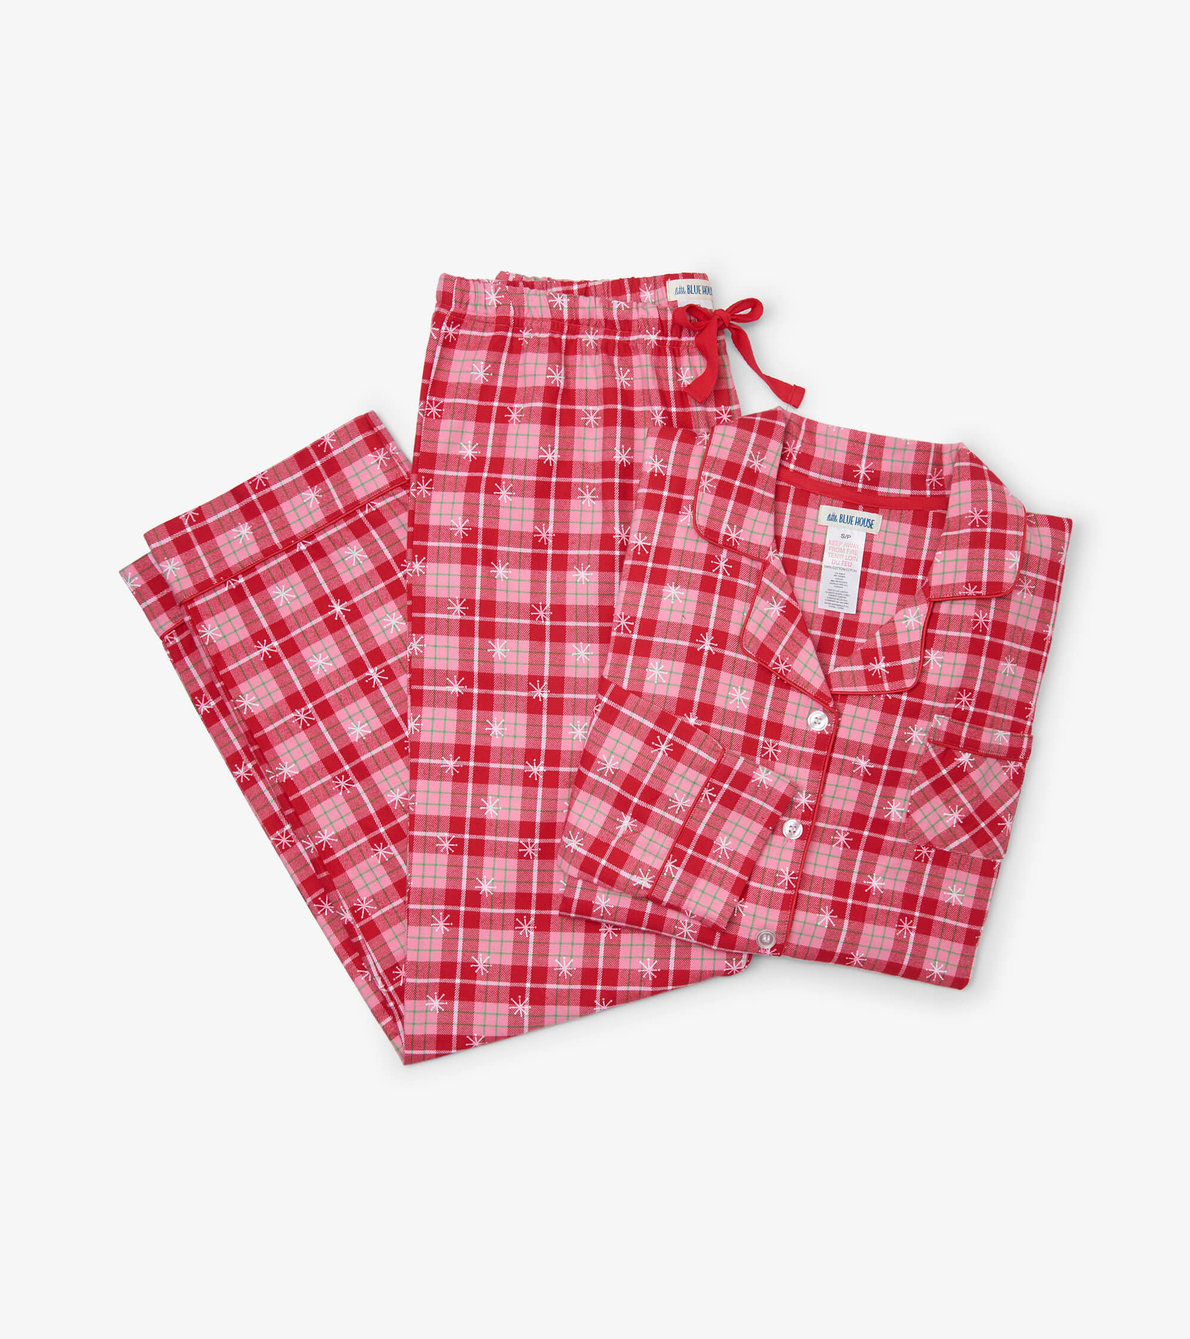 View larger image of Retro Christmas Plaid Women's Flannel Pajama Set